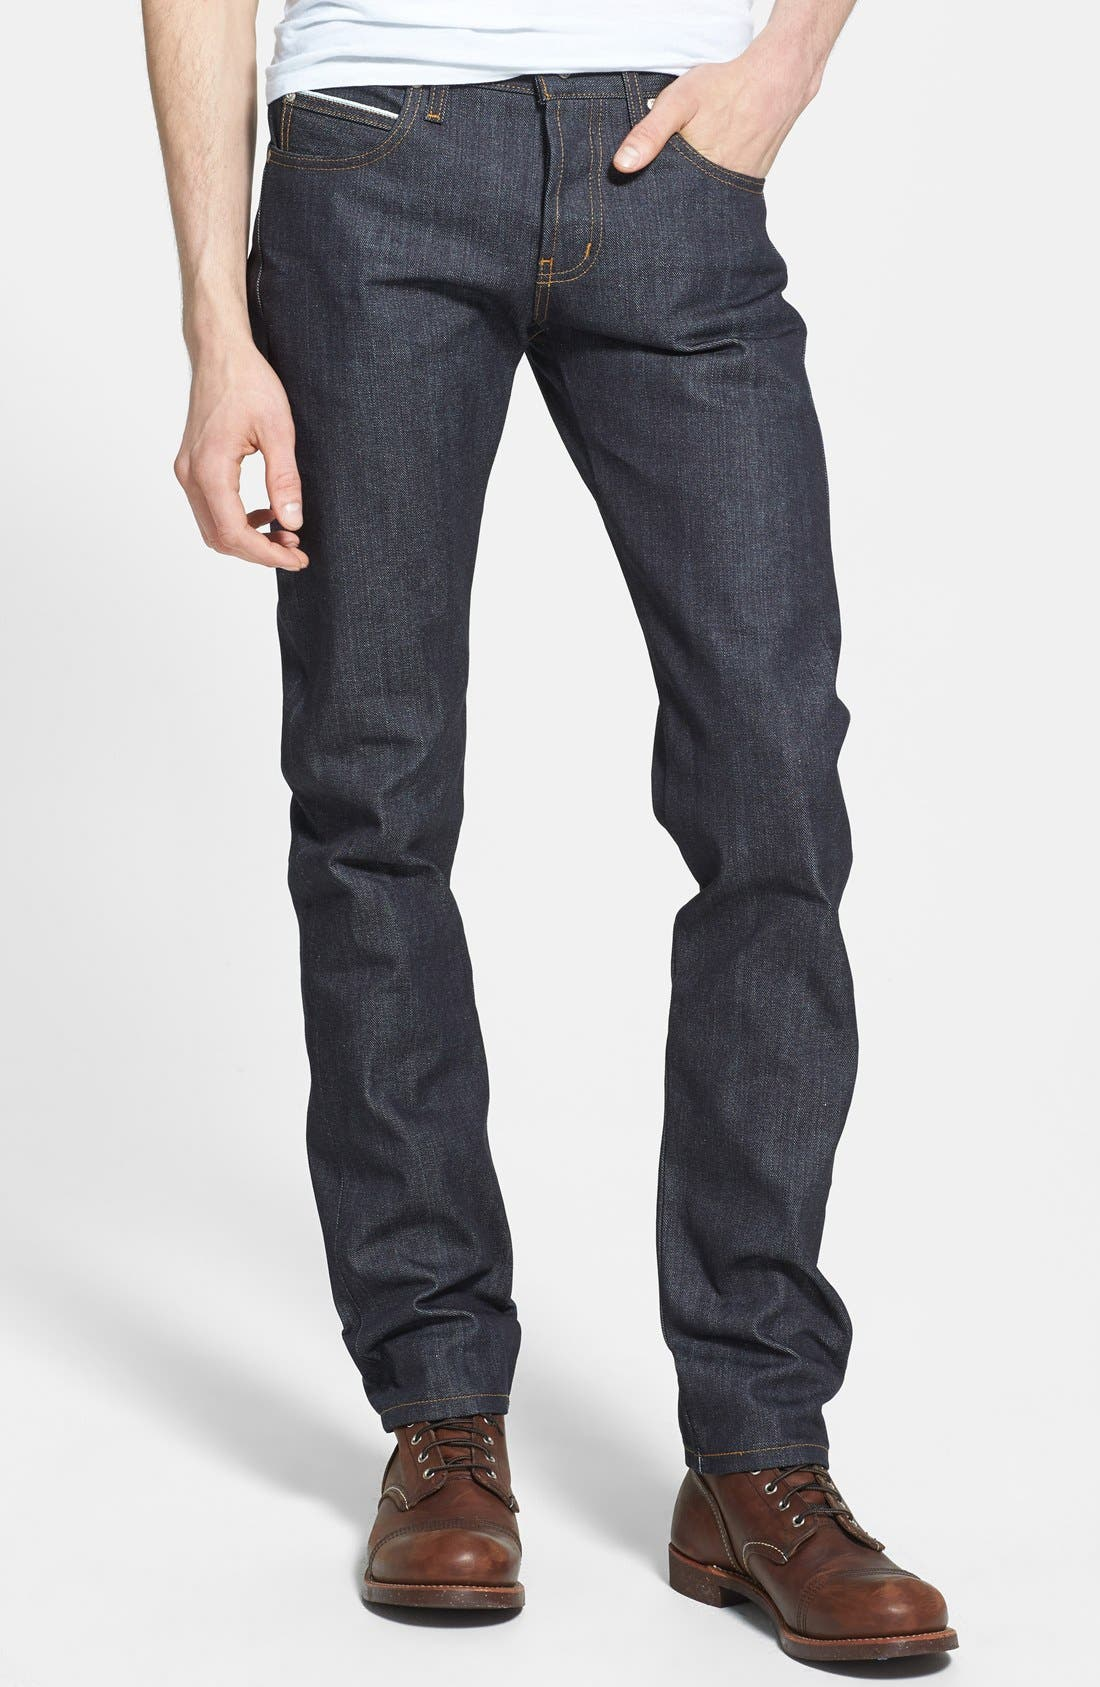 'Super Skinny Guy' Skinny Fit Jeans,                             Main thumbnail 1, color,                             Left Hand Twill Selvedge